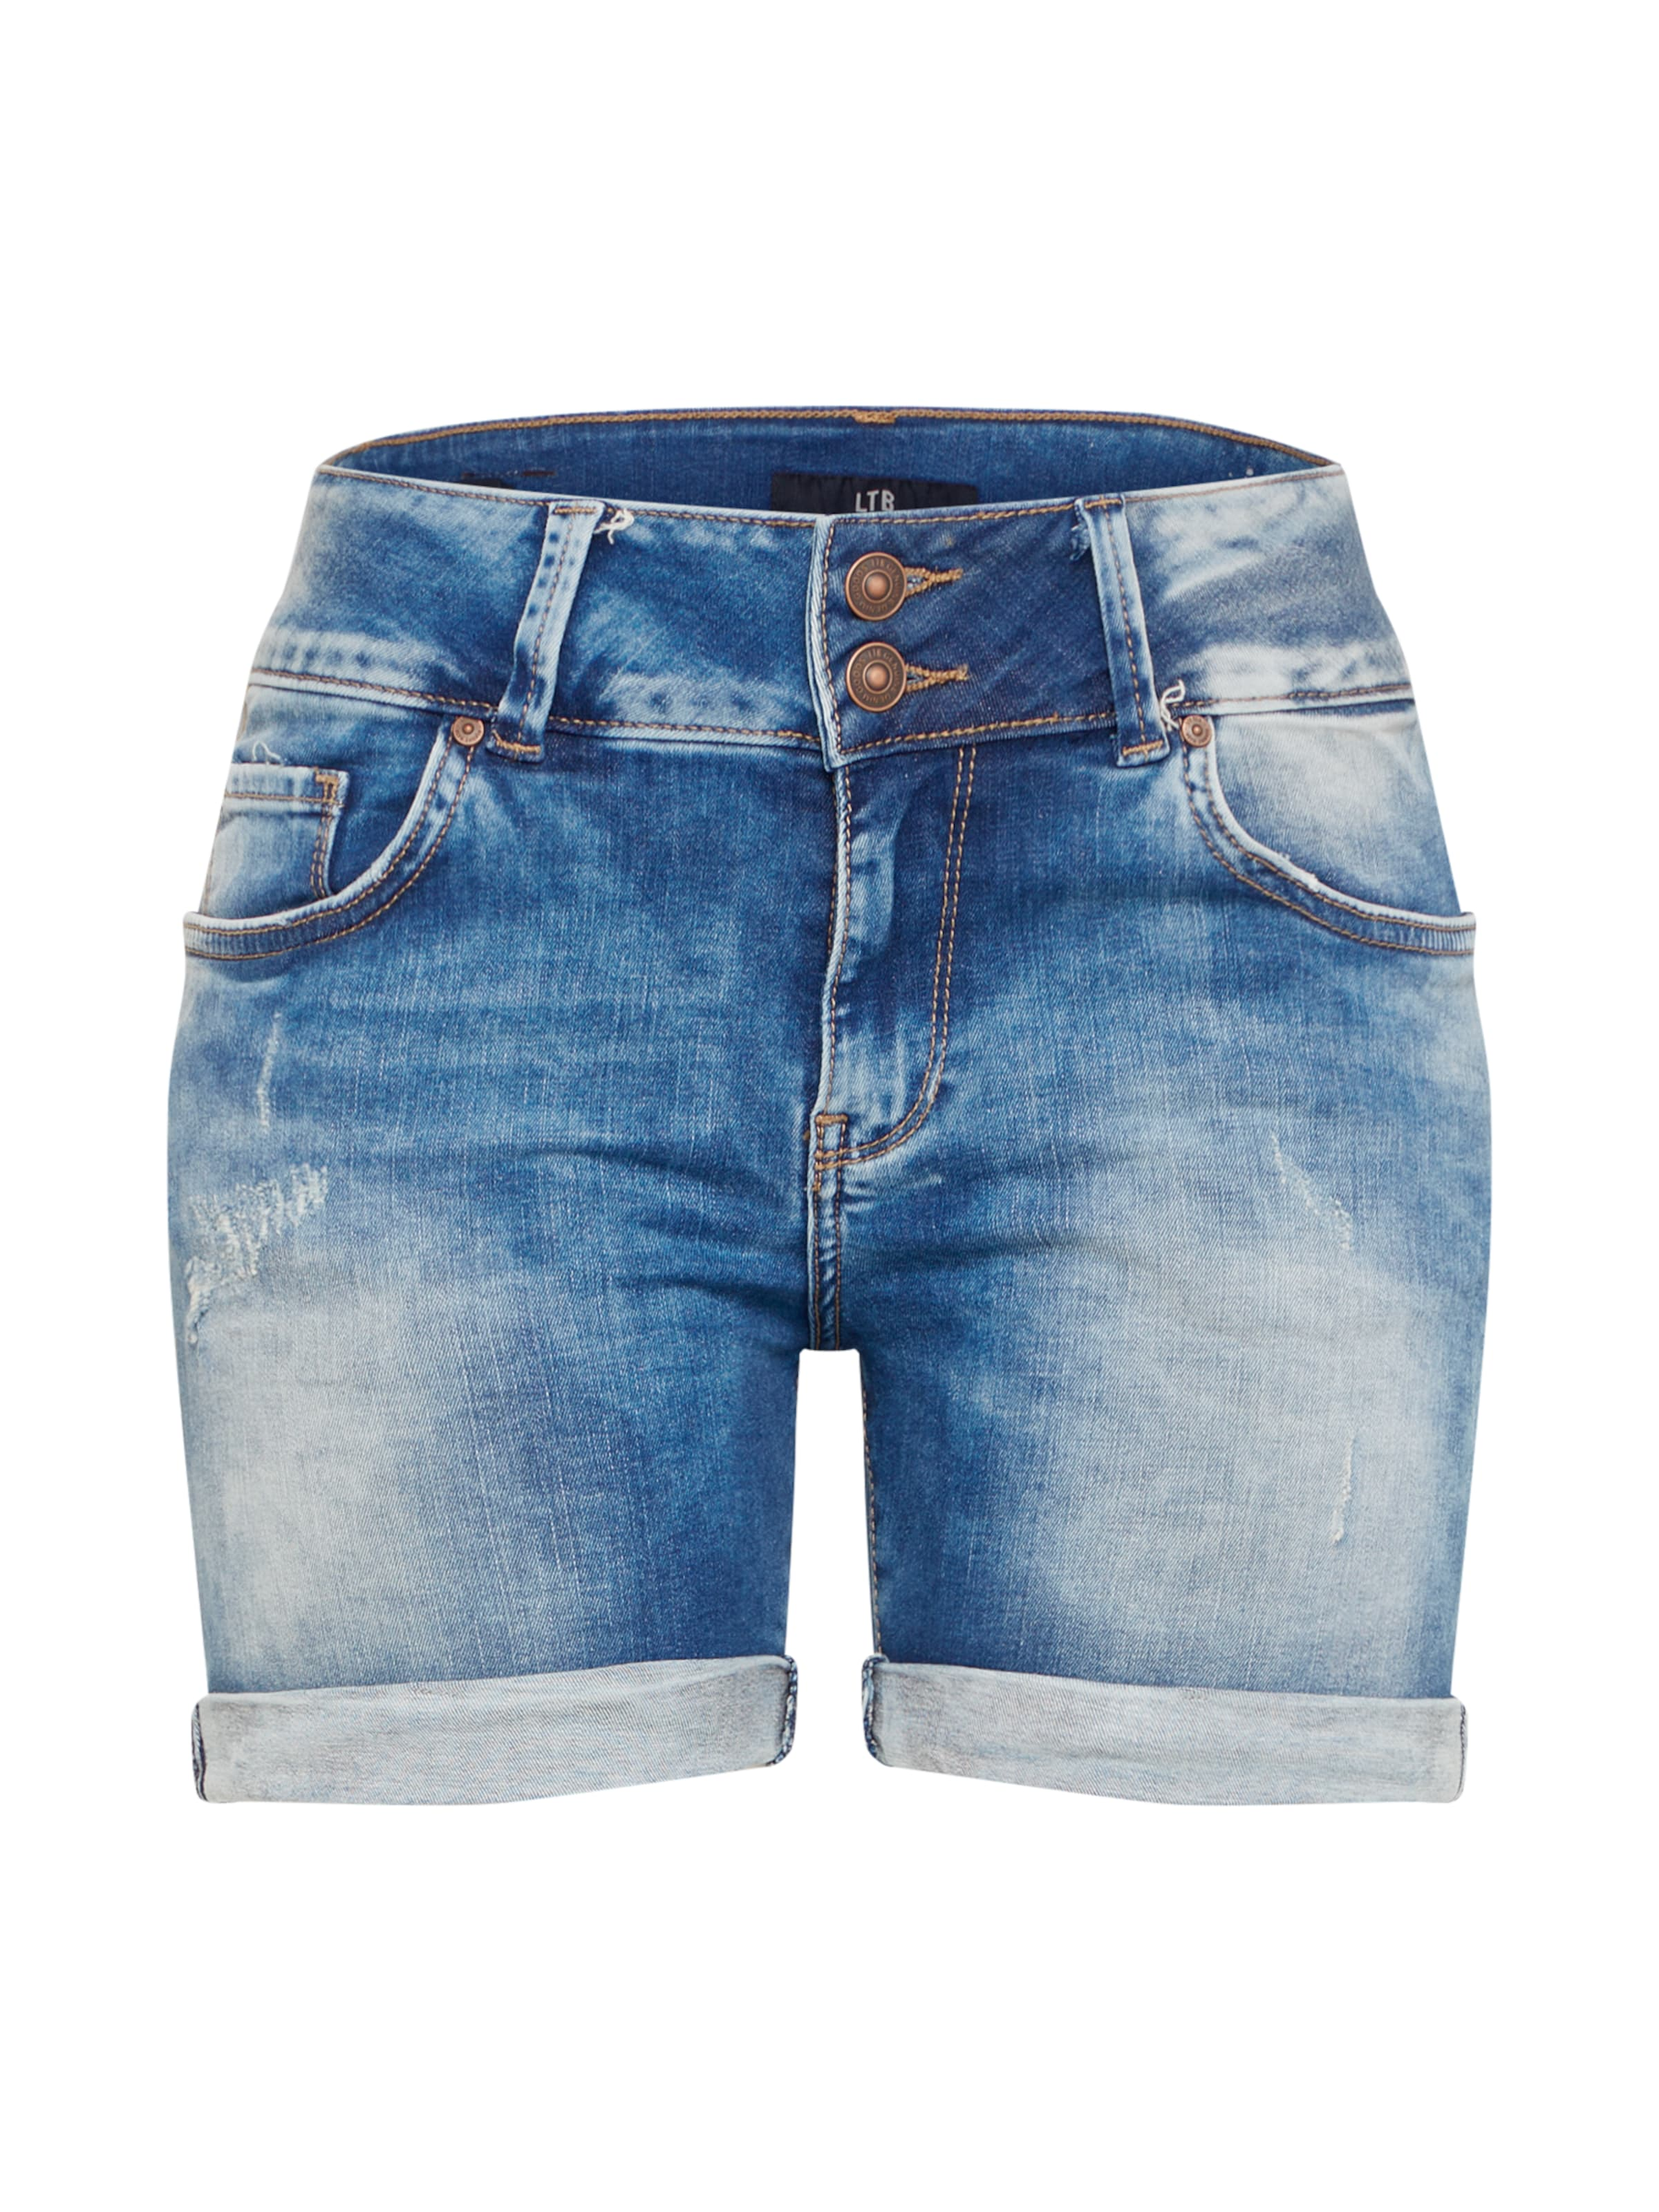 Shorts BECKY blue denim LTB Jeans